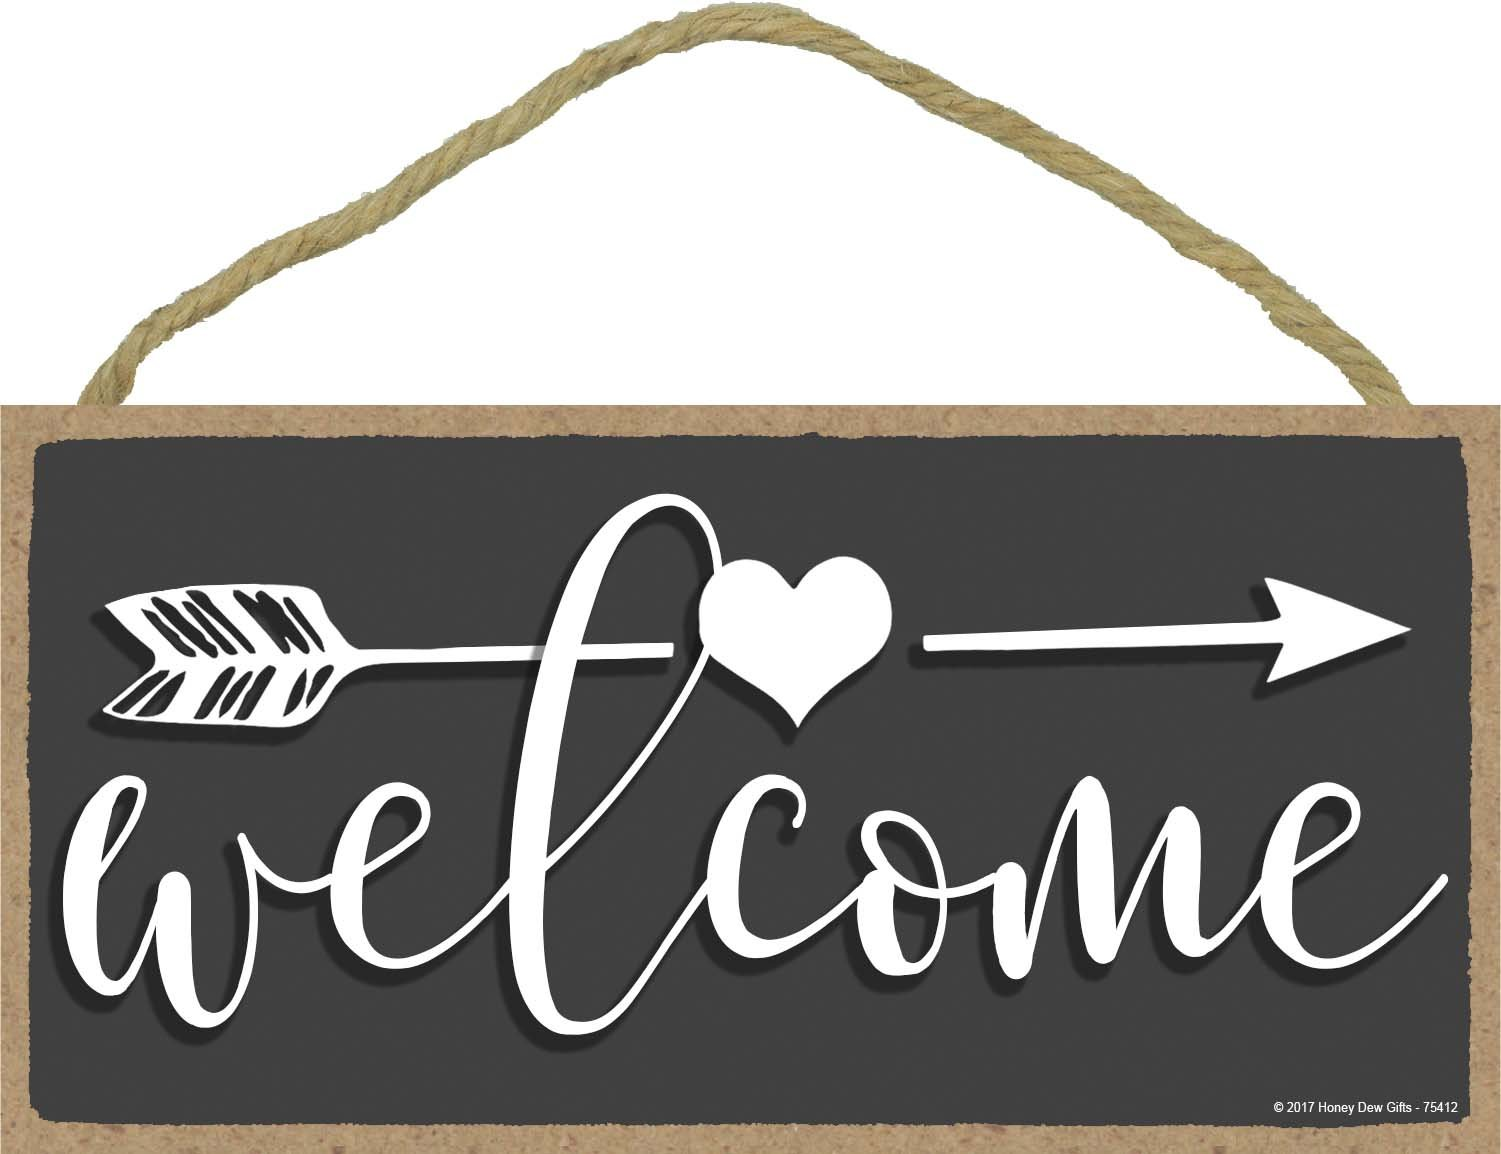 Welcome - 5 x 10 inch Hanging, Wall Art, Decorative Wood Sign Home Decor by Honey Dew Gifts